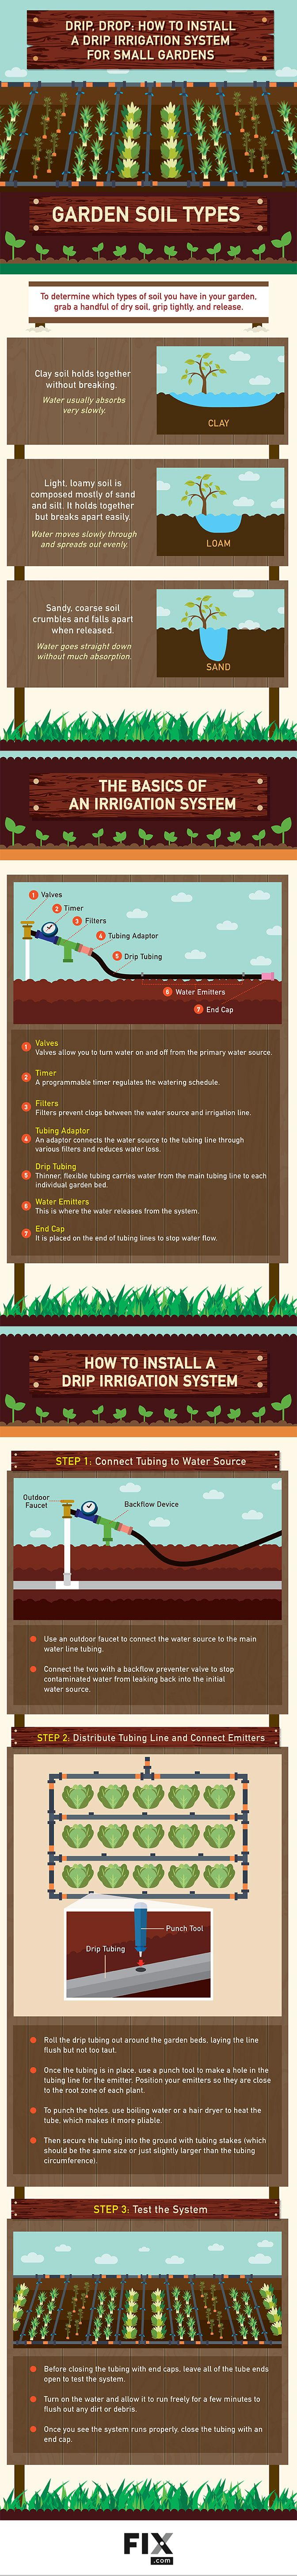 Drip, Drop: How to Install a Drip Irrigation System for Small Gardens